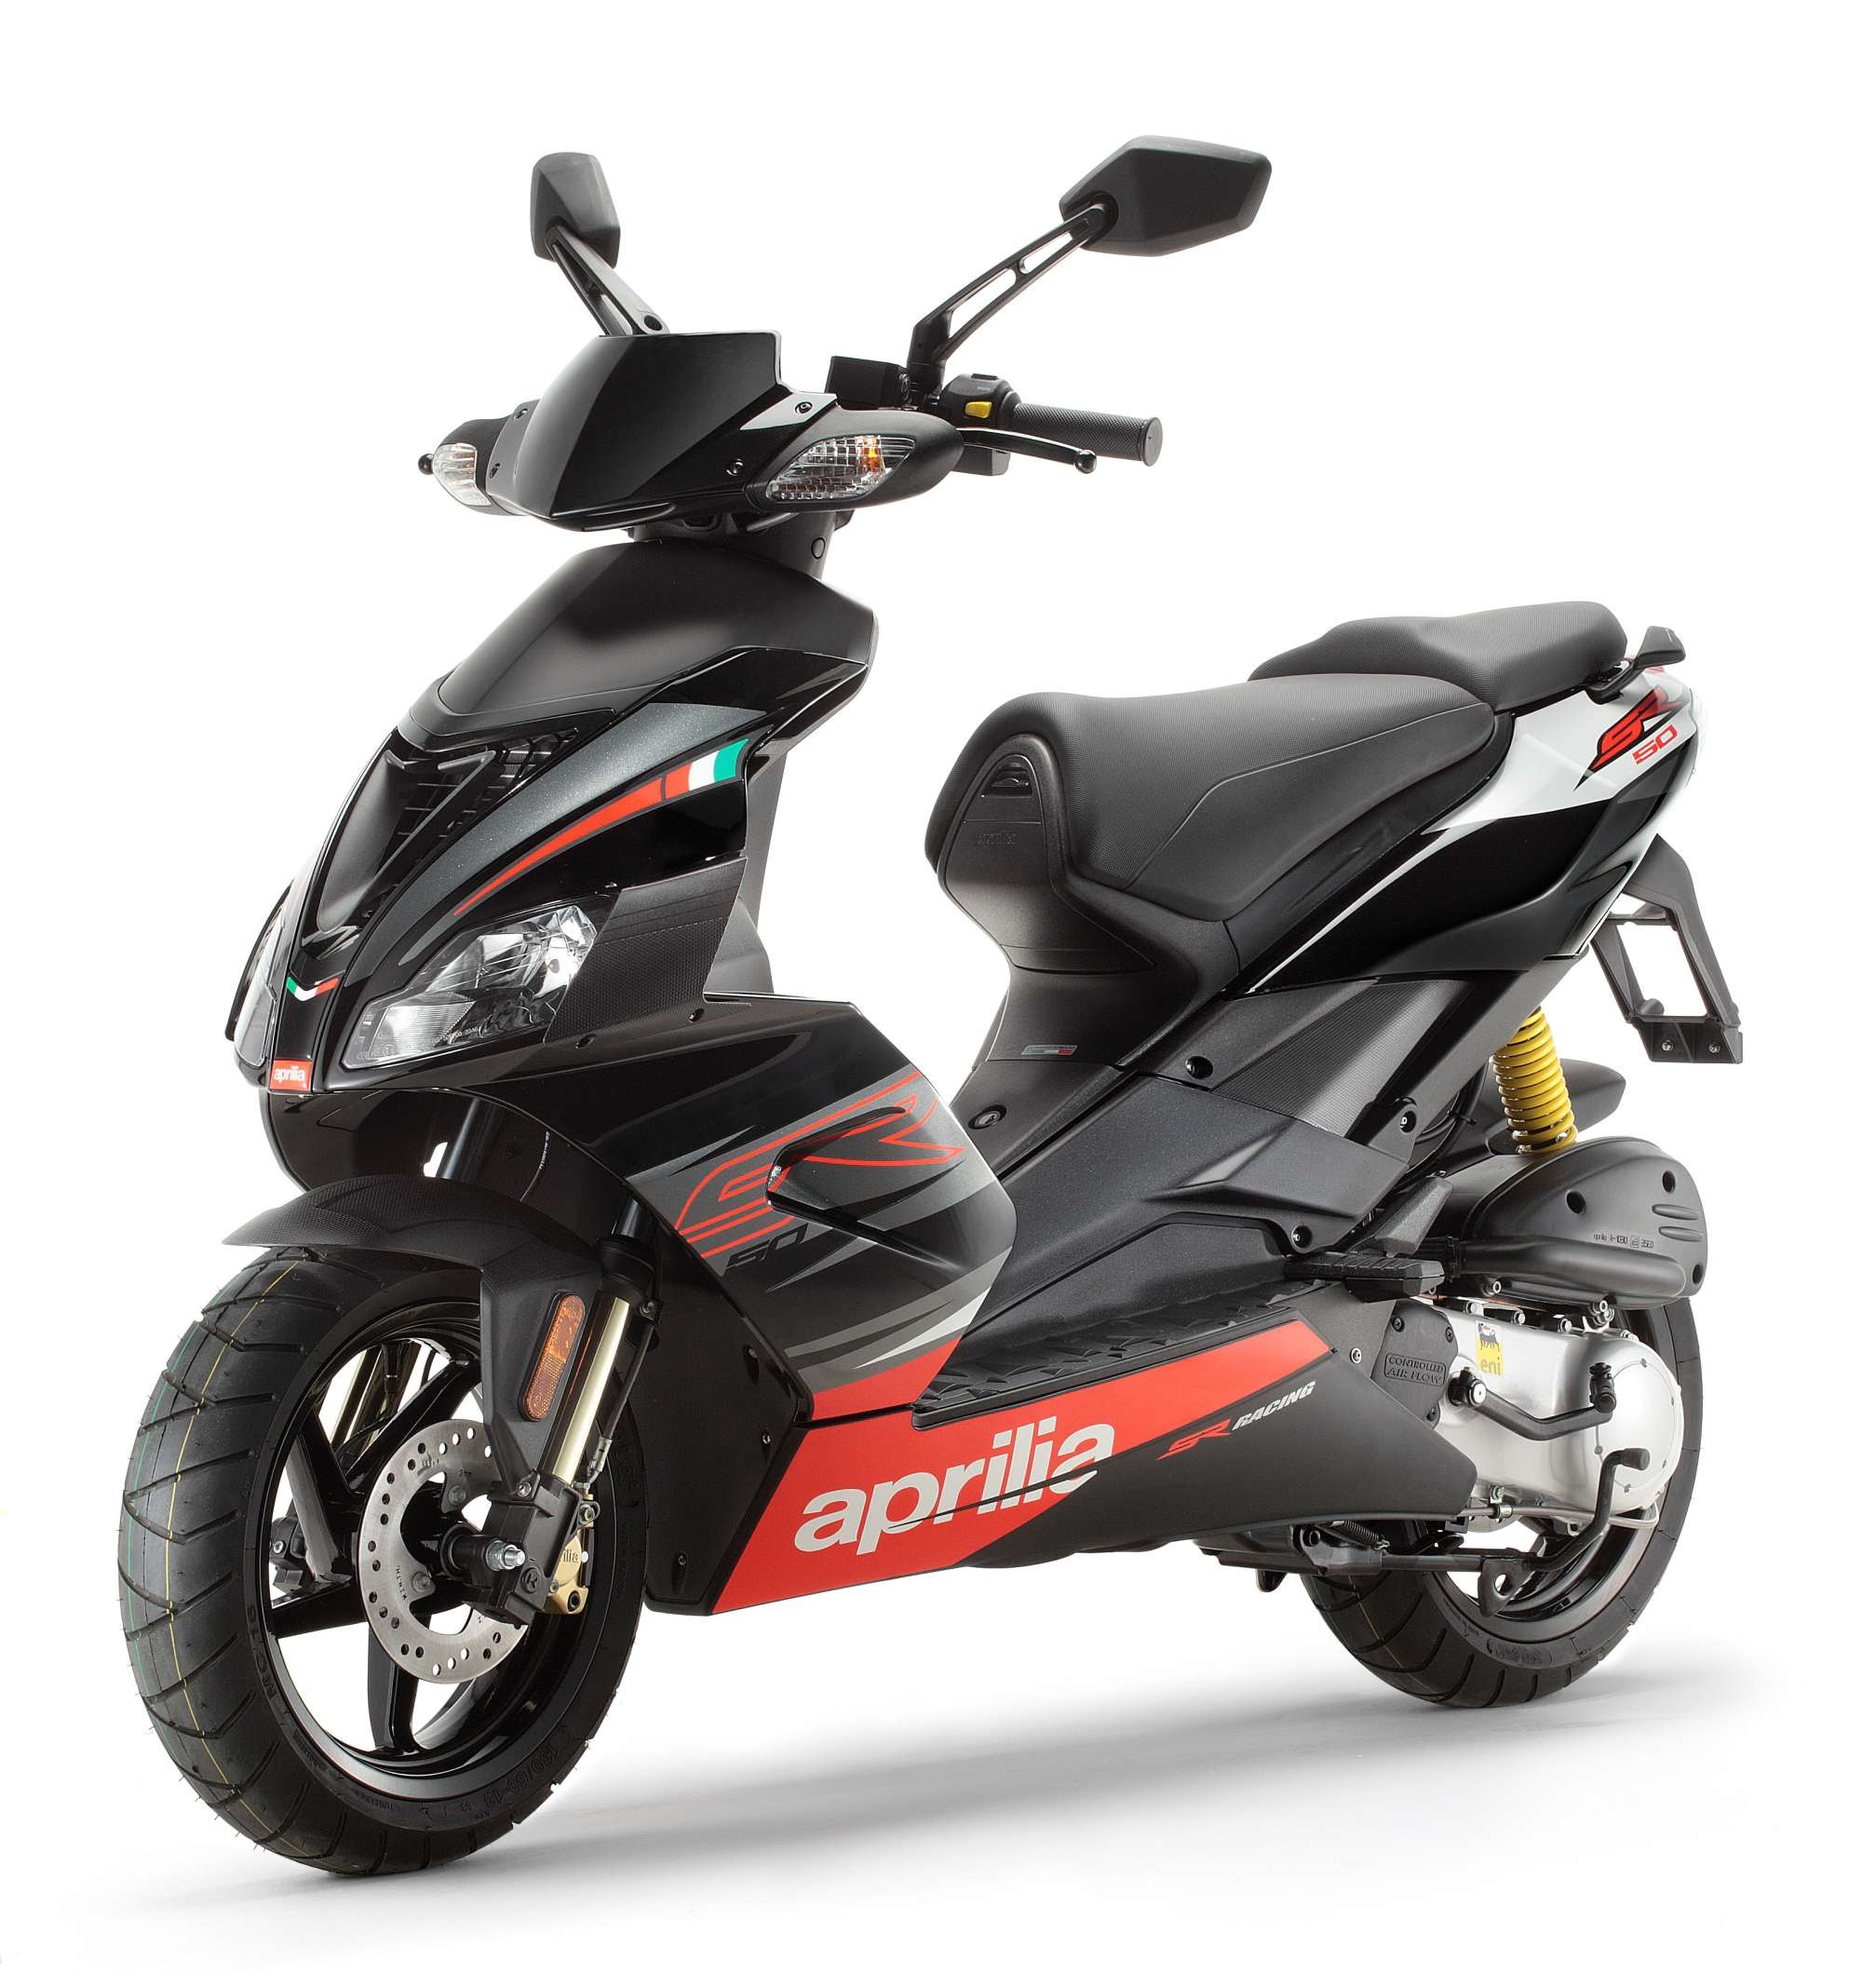 aprilia sr 50 motard pics specs and list of seriess by year. Black Bedroom Furniture Sets. Home Design Ideas